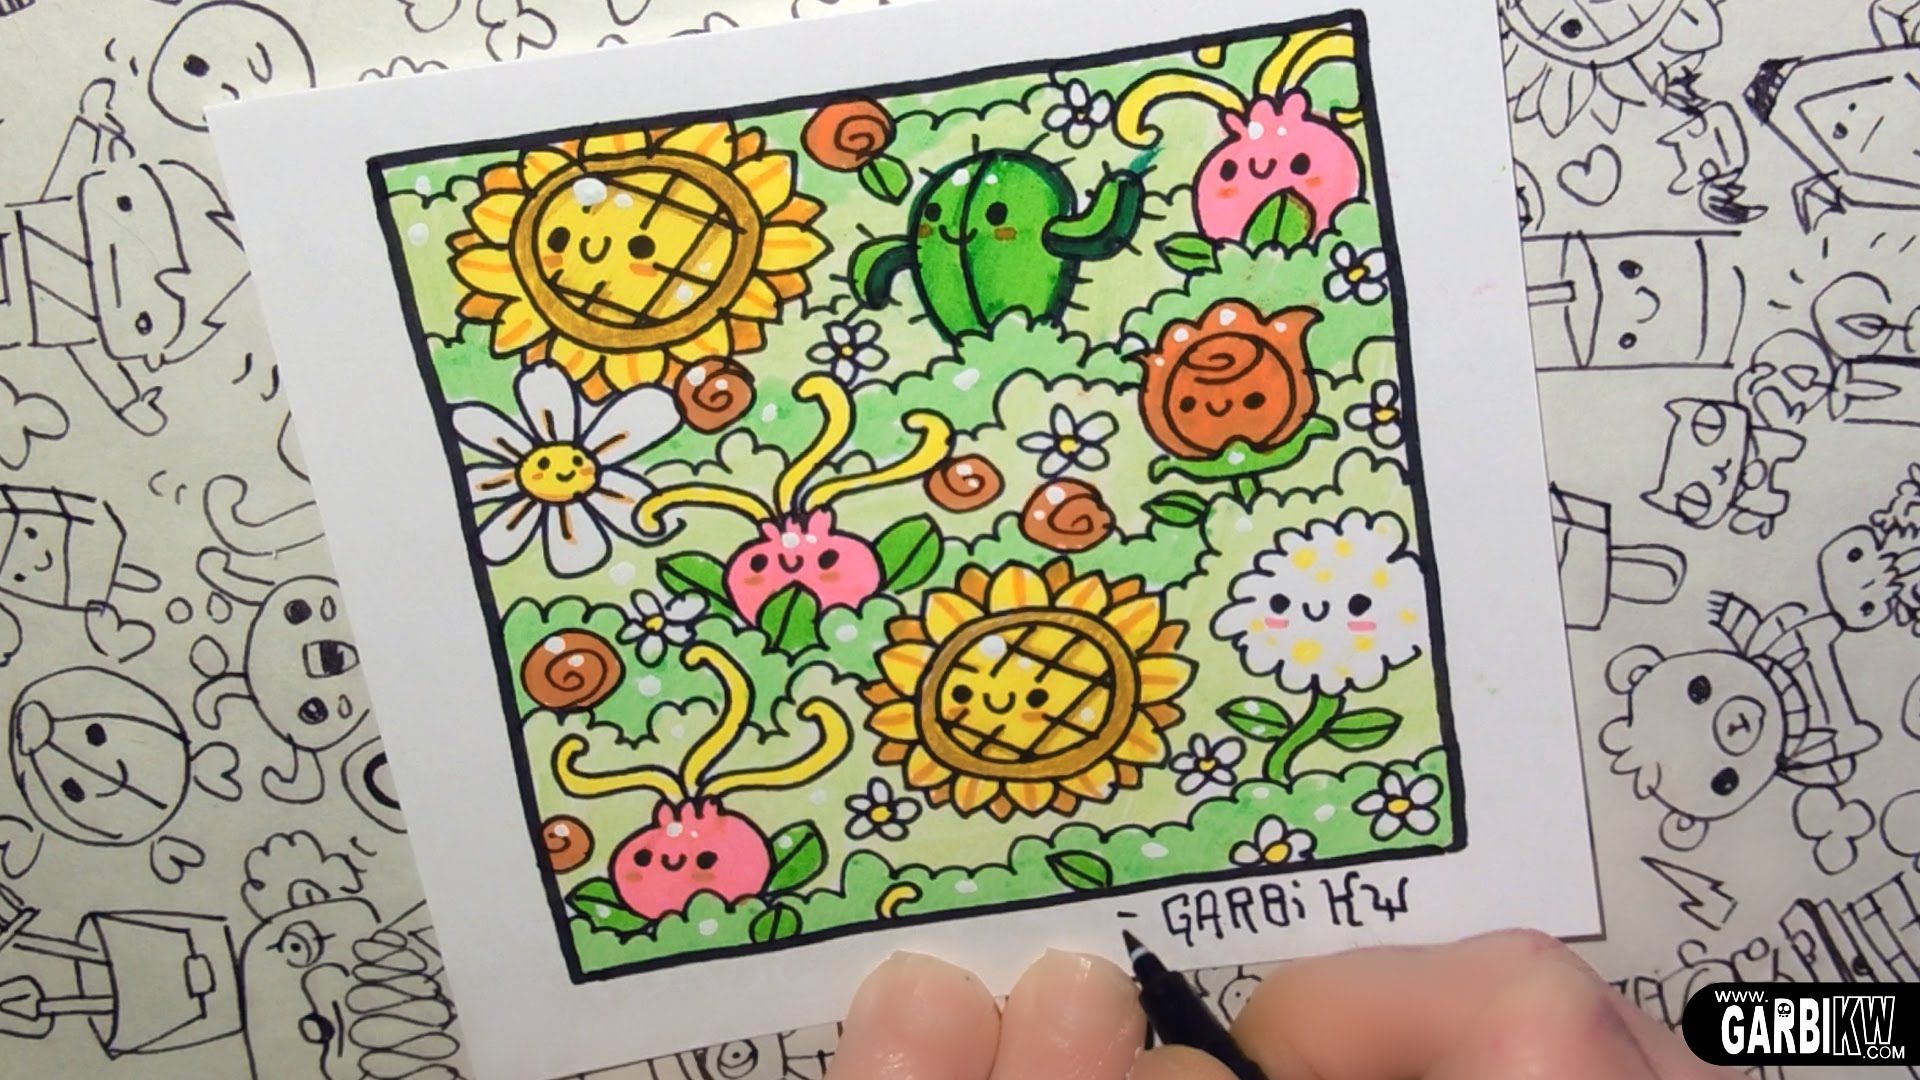 Kawaii Flowers By Garbi Kw How To Draw Patterns For Your Doodles